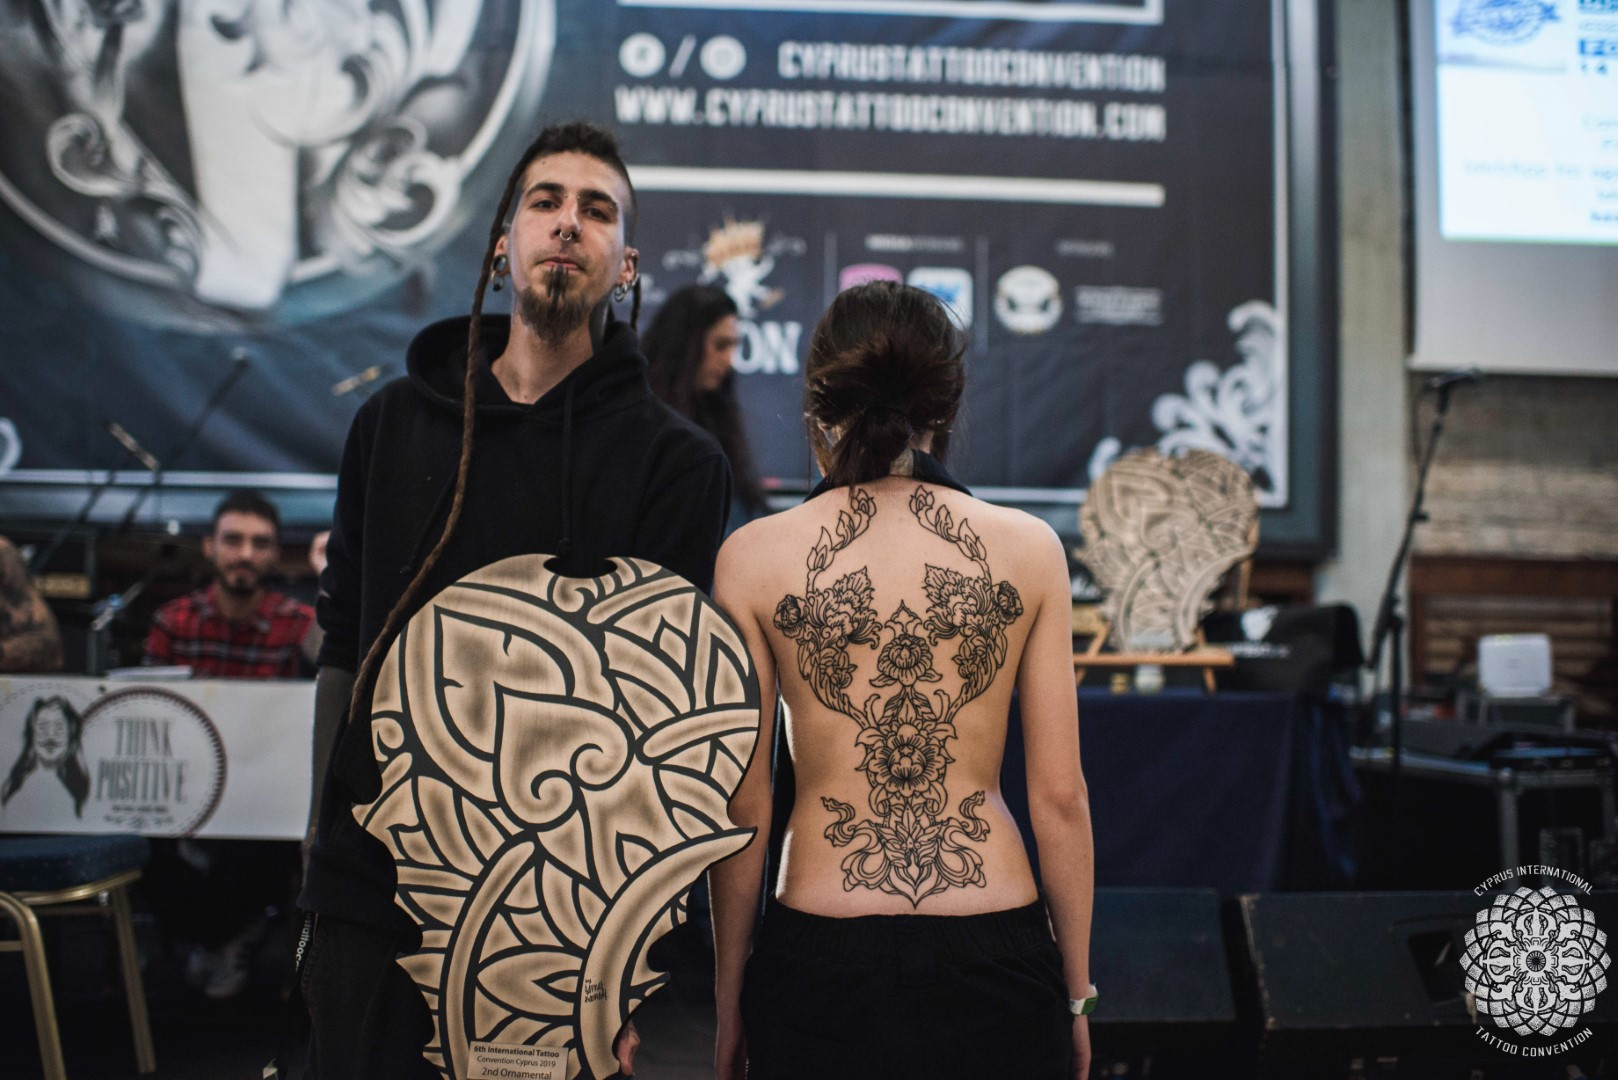 Awards2019 Cyprus International Tattoo Convention International Tattoo Convention Taking Place In Cyprus Endorsing Artists From All Over The World Three Days Full Of Ink Art Drinks Fun